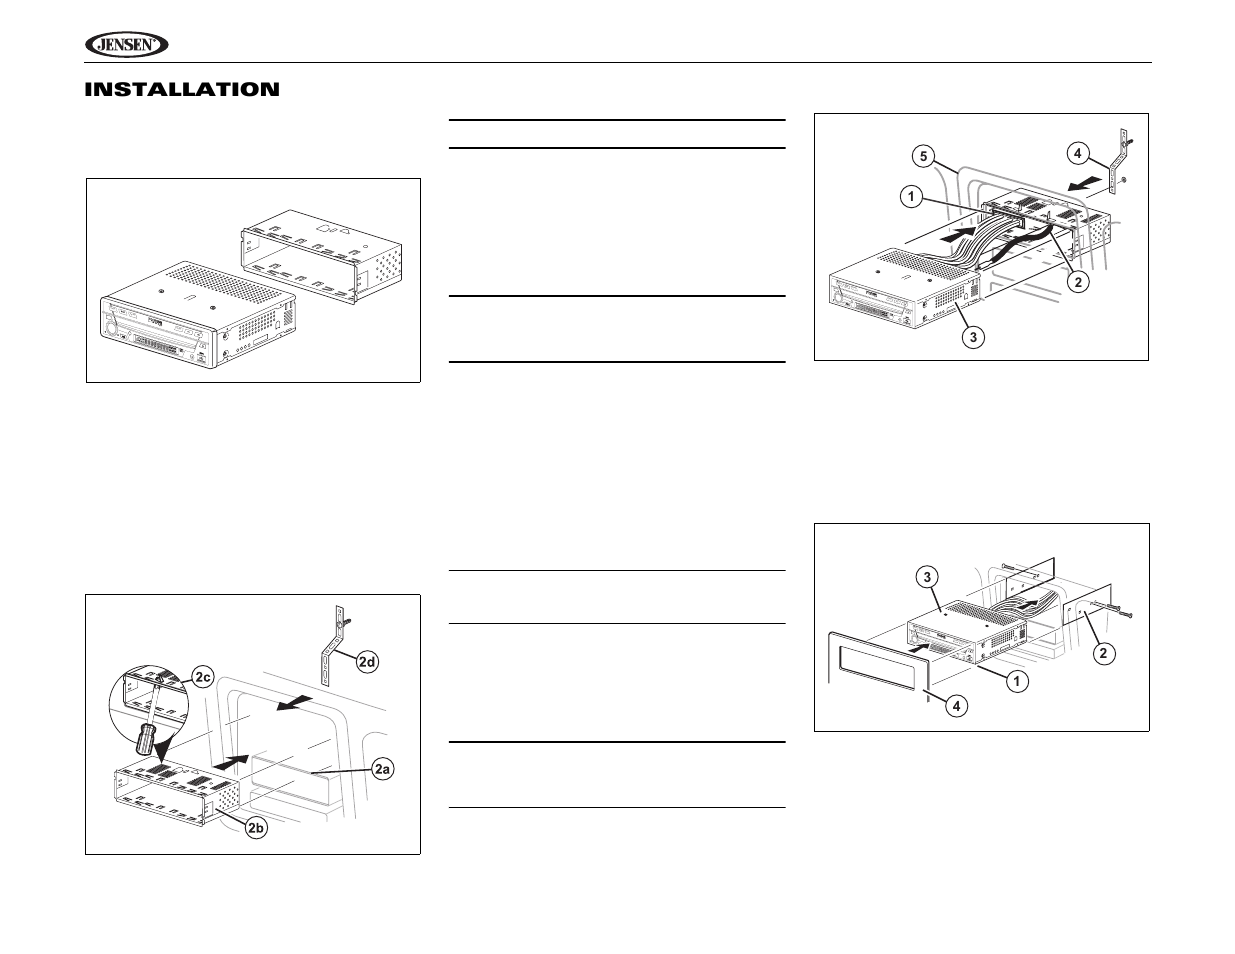 jensen uv9 page8 jensen uv9 wiring diagram audio control wiring diagram \u2022 wiring  at crackthecode.co